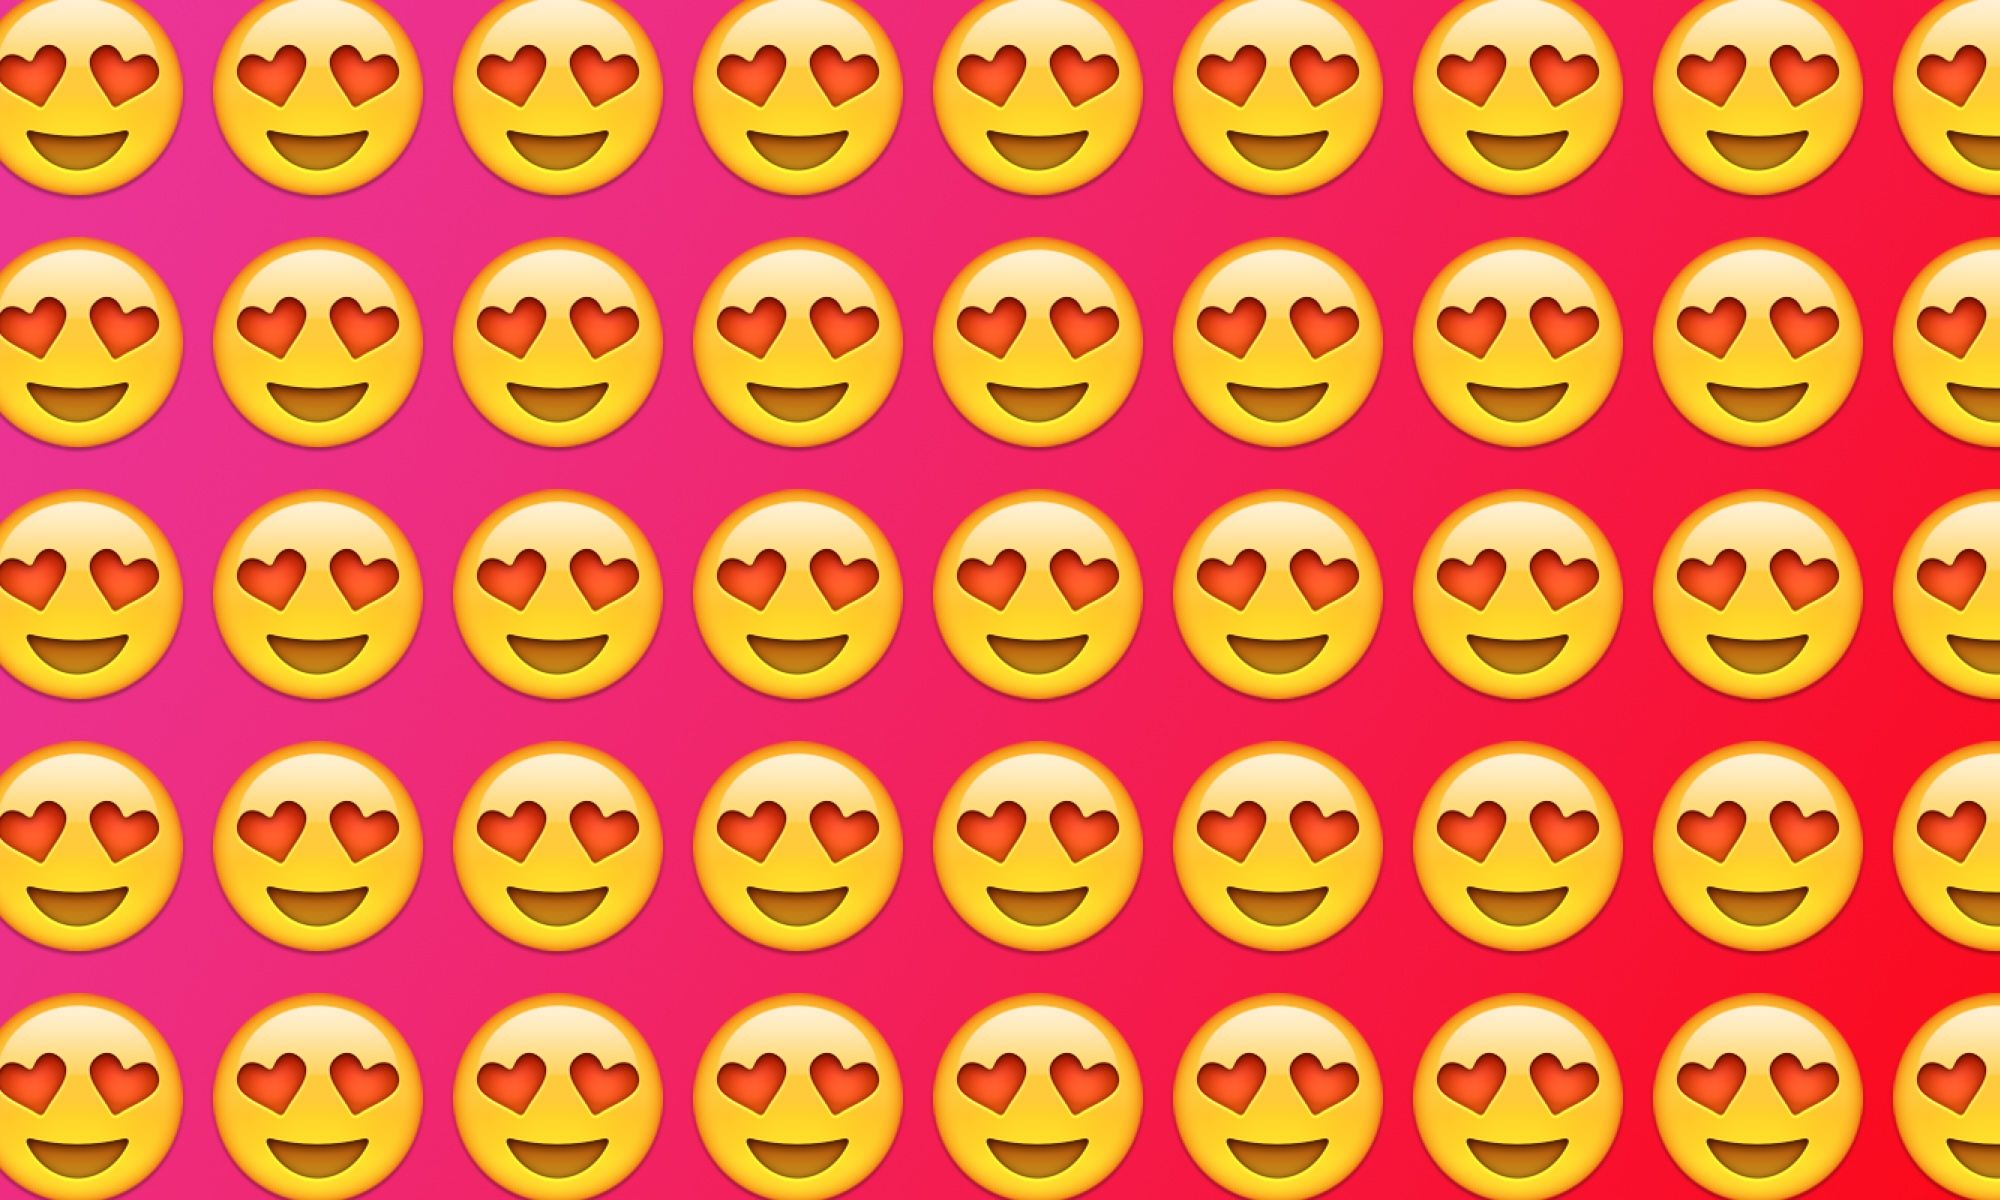 Emojiology: 😍 Smiling Face With Heart-Eyes